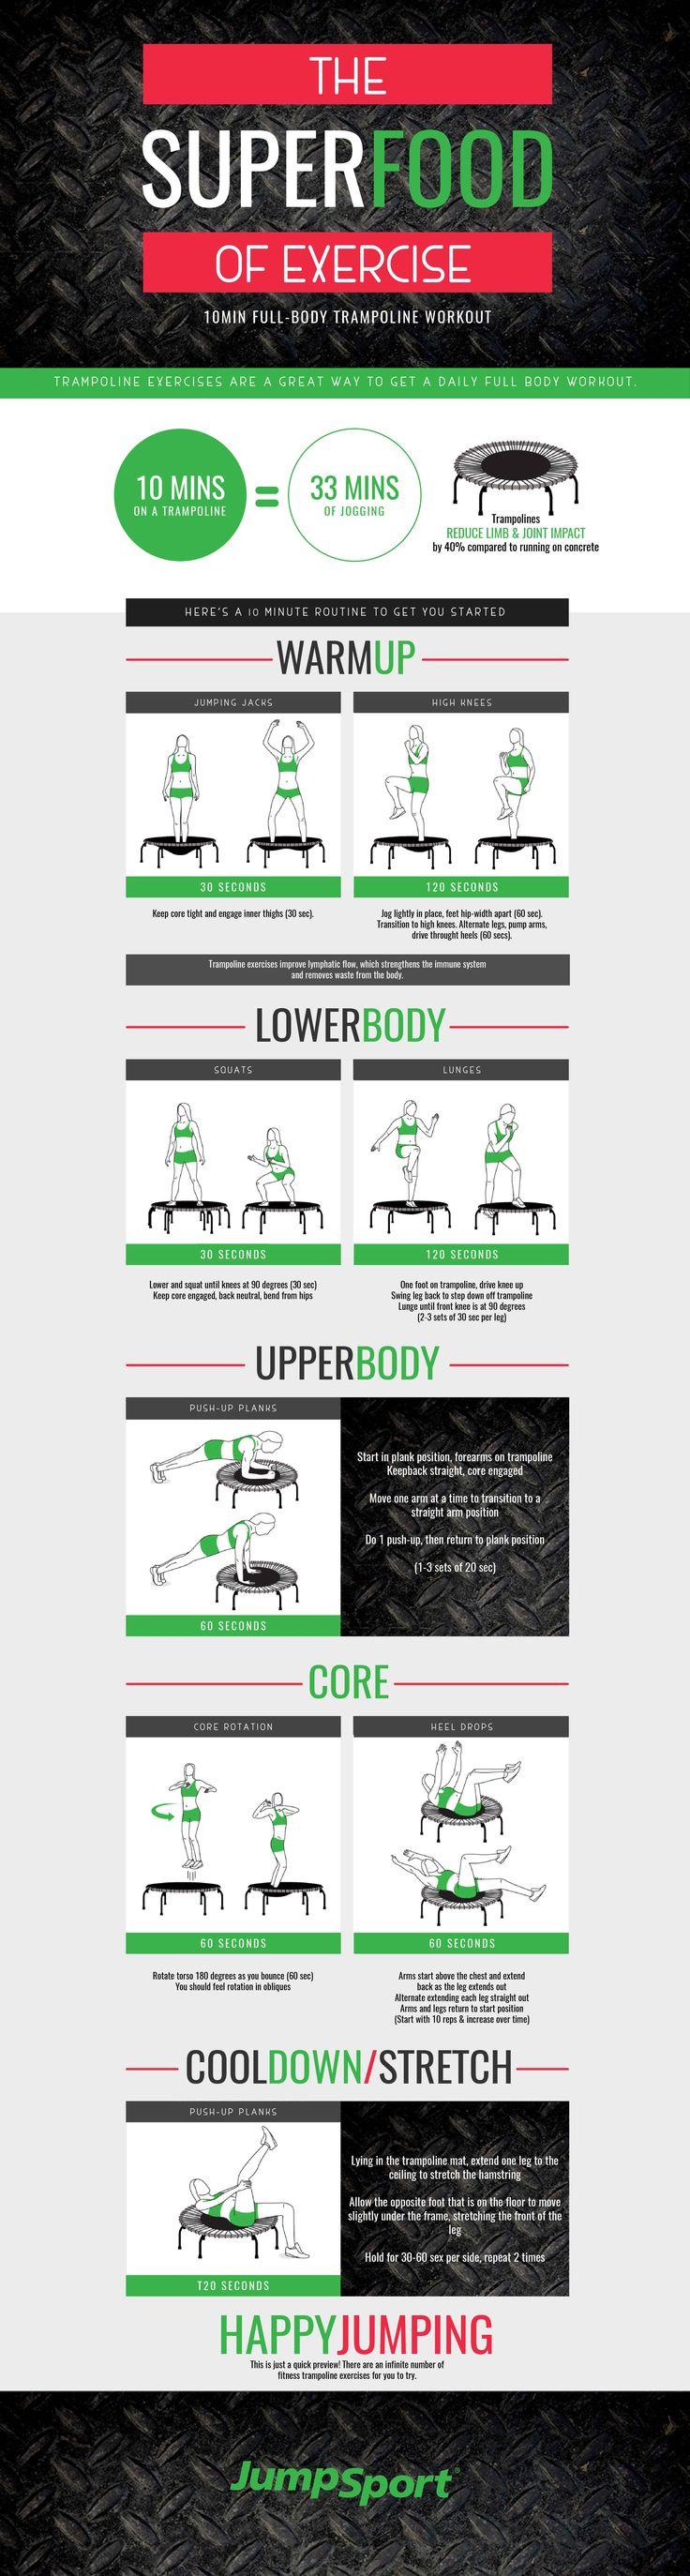 Get fit at home with this JumpSport® fitness trampoline workout! Visit http://www.jumpsport.com/trampoline-exercises-visual-guide to see this step by step workout guide with their fitness trampoline.  (New Products Creative)